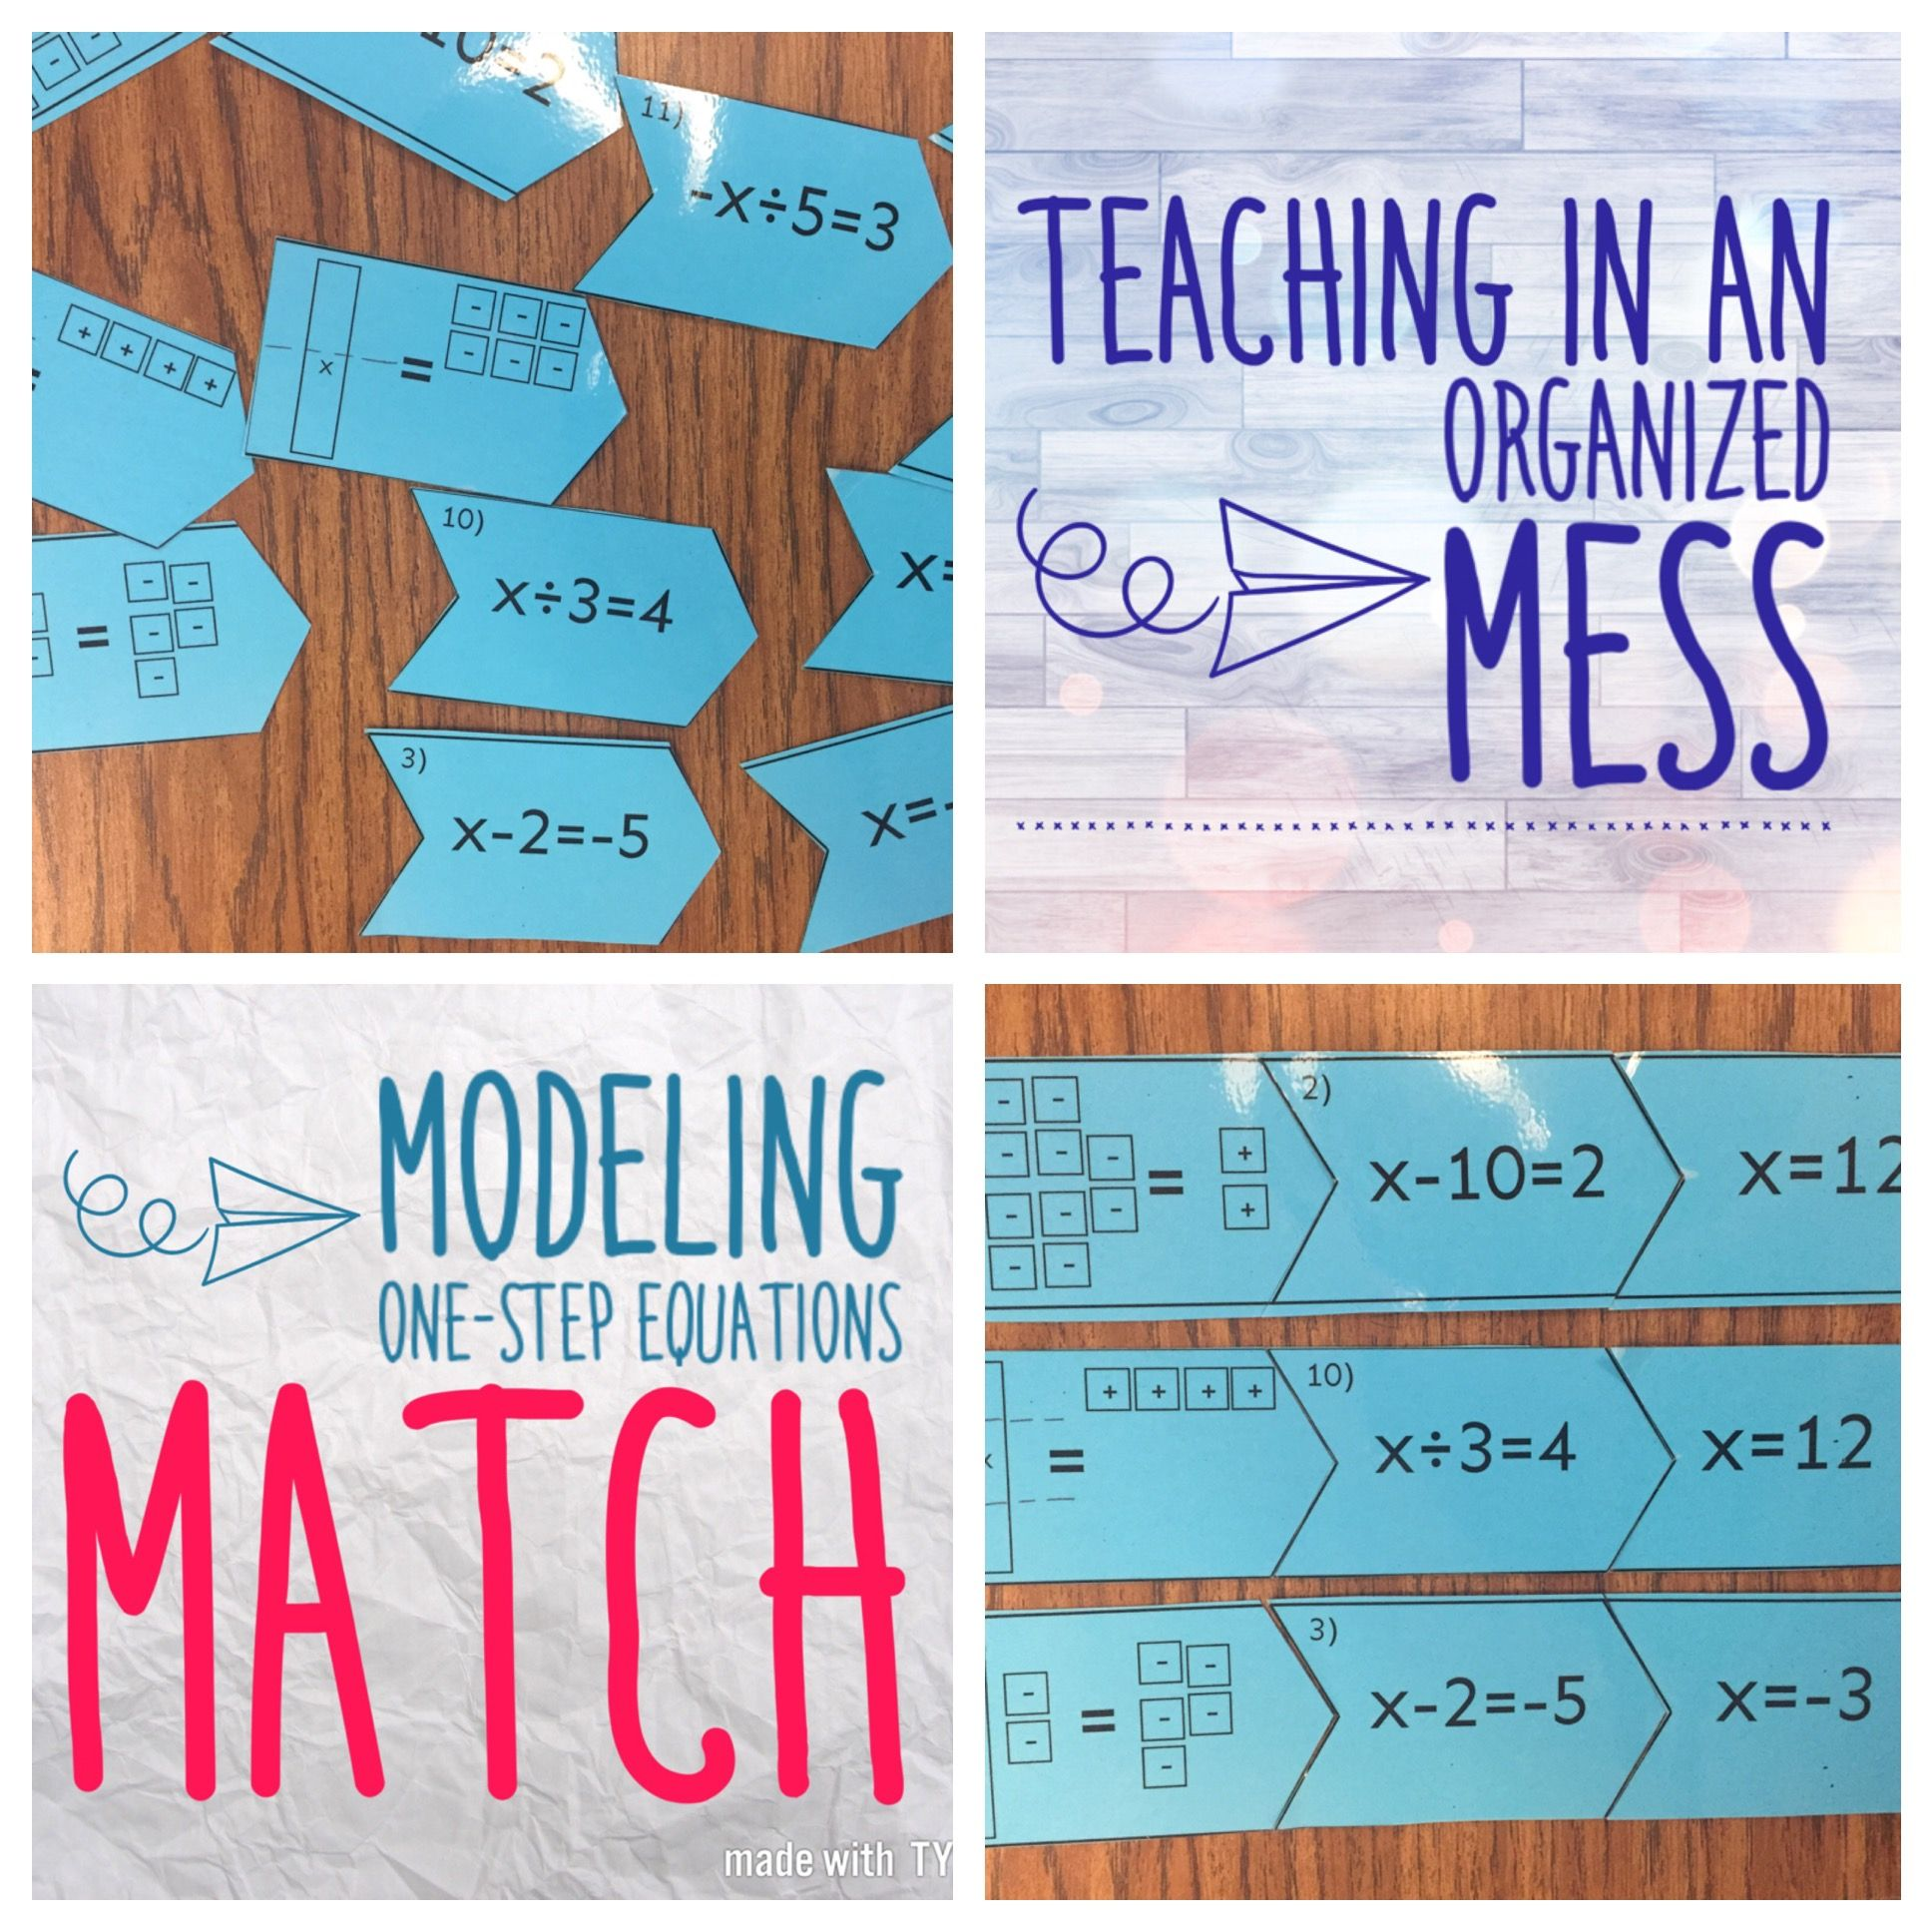 medium resolution of Modeling One Step Equations Matching   One step equations